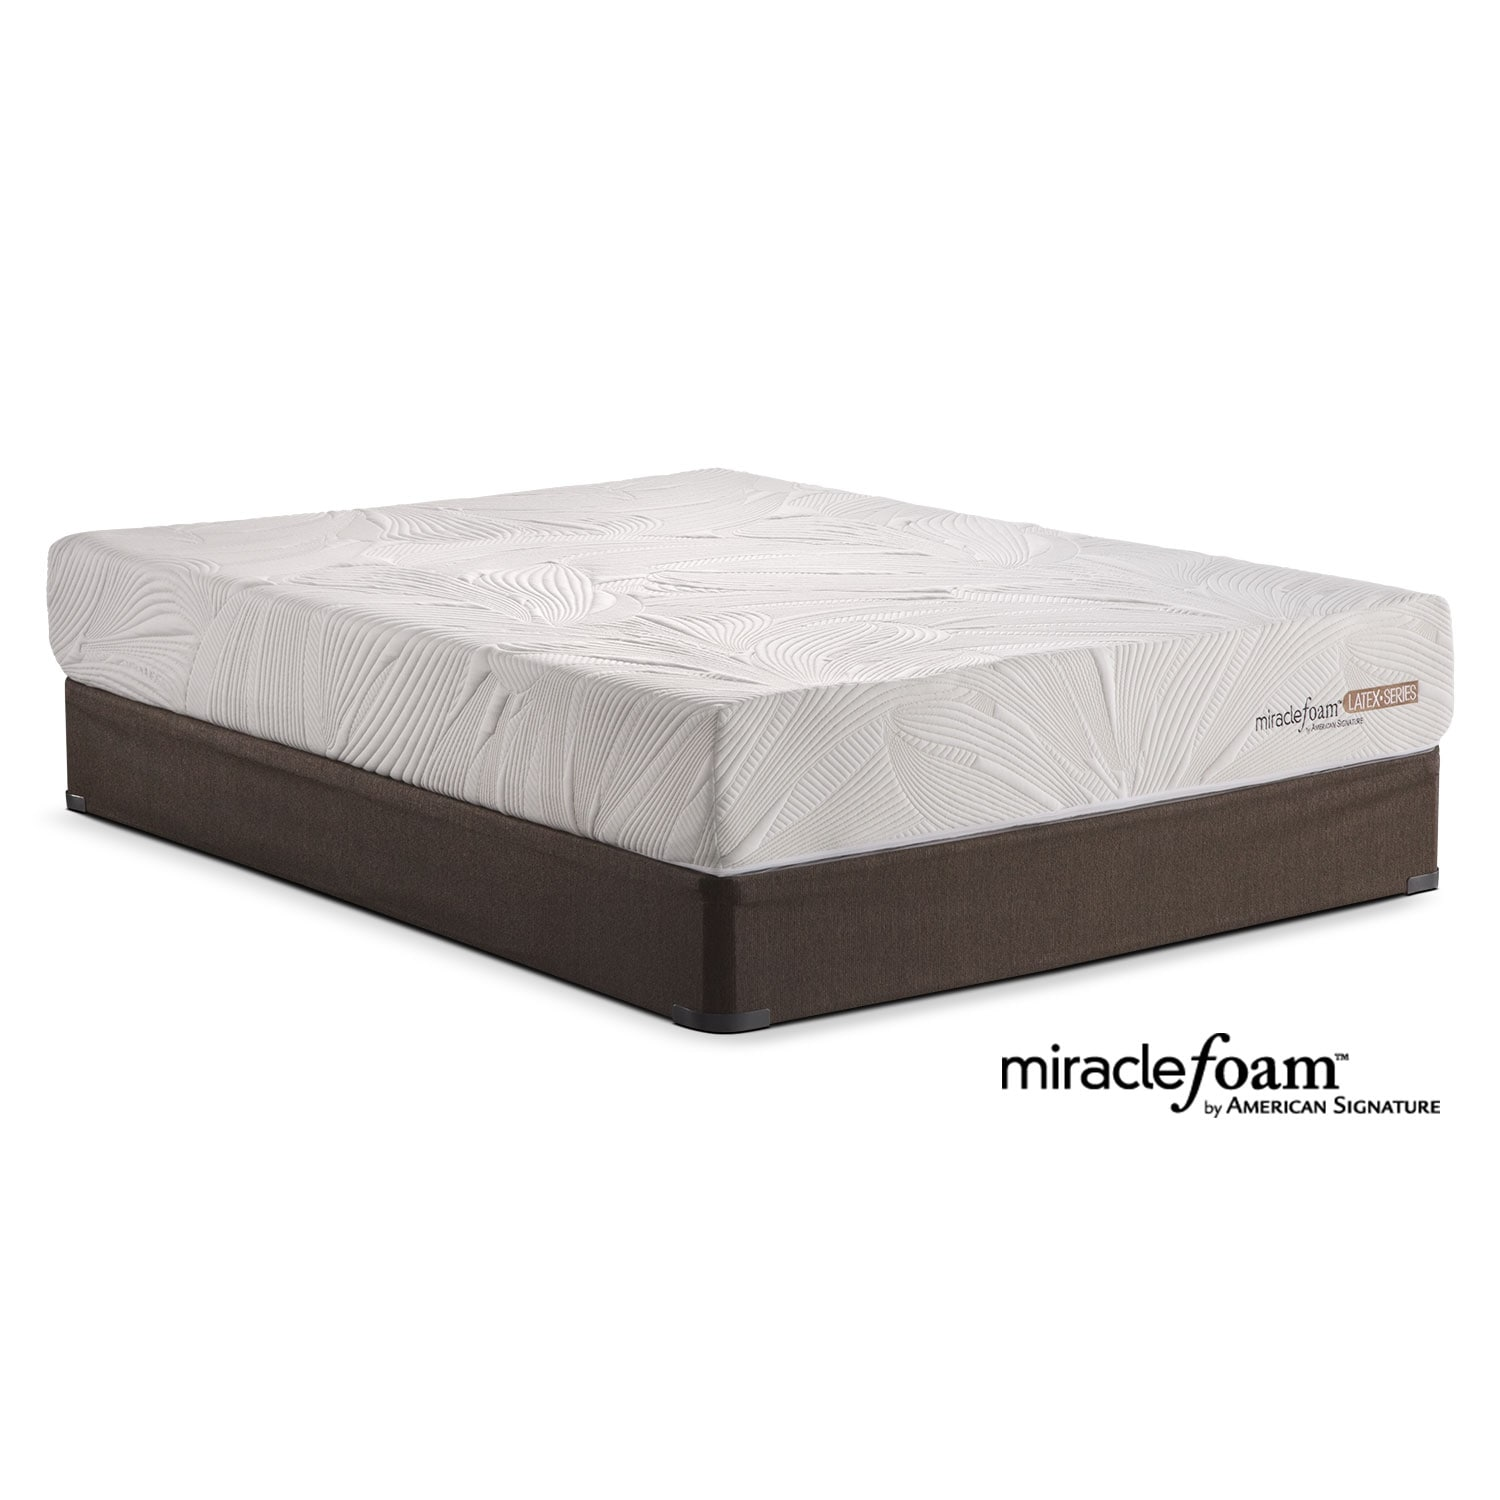 Mattresses and Bedding - Tranquil Full Mattress/Foundation Set